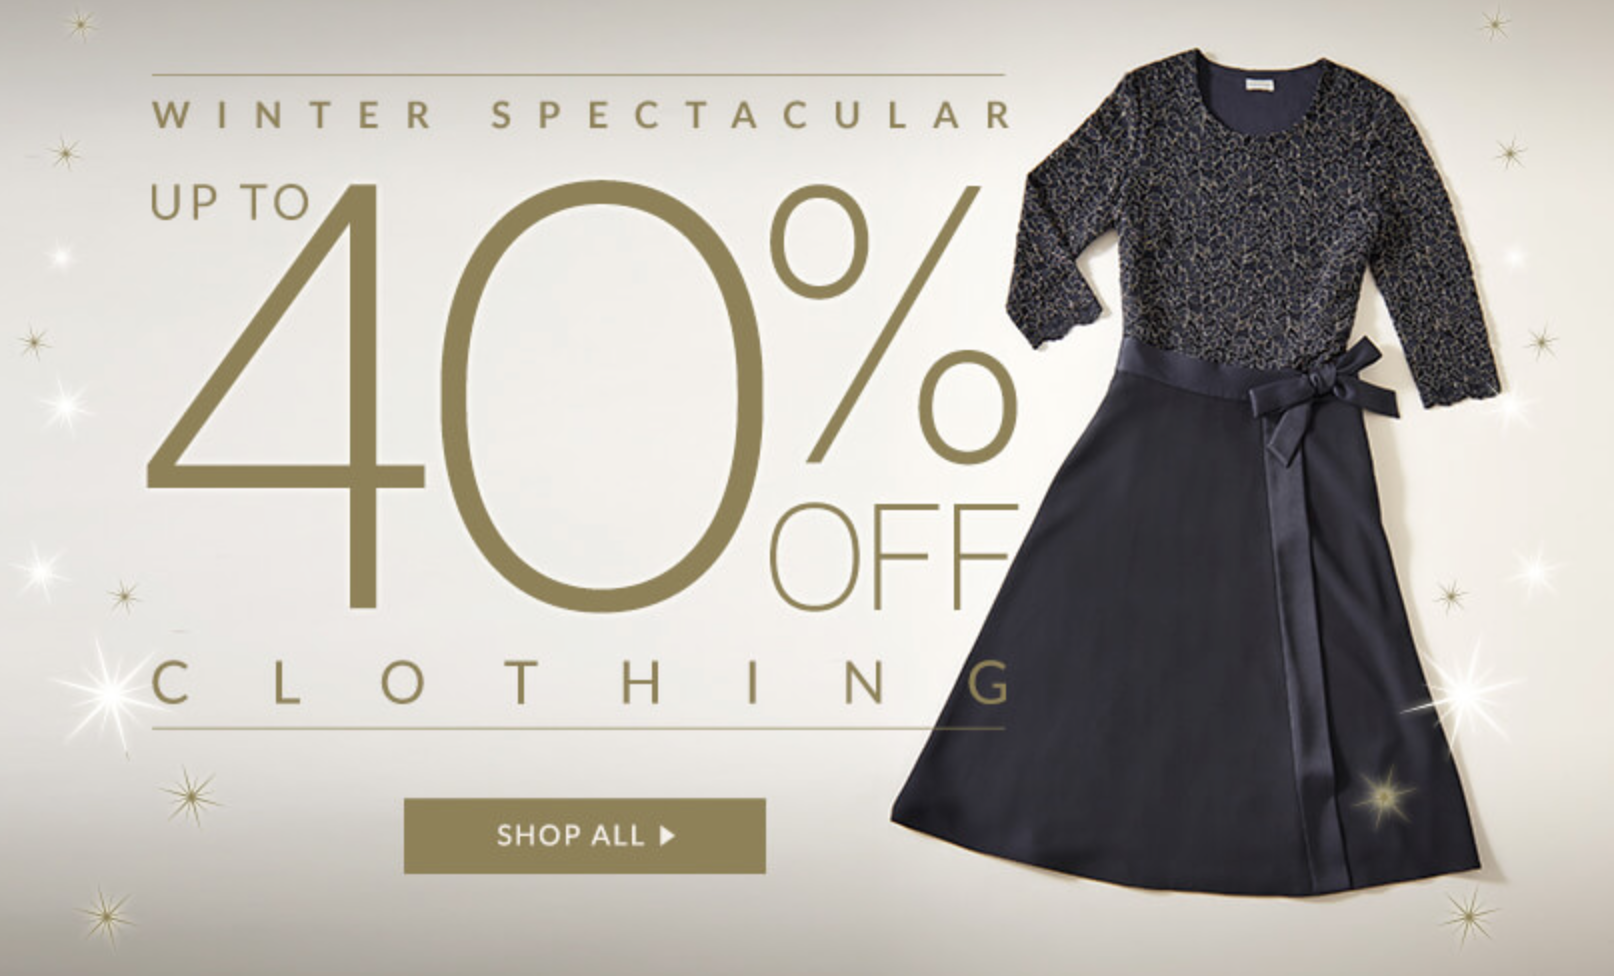 Eastex: up to 40% off clothing